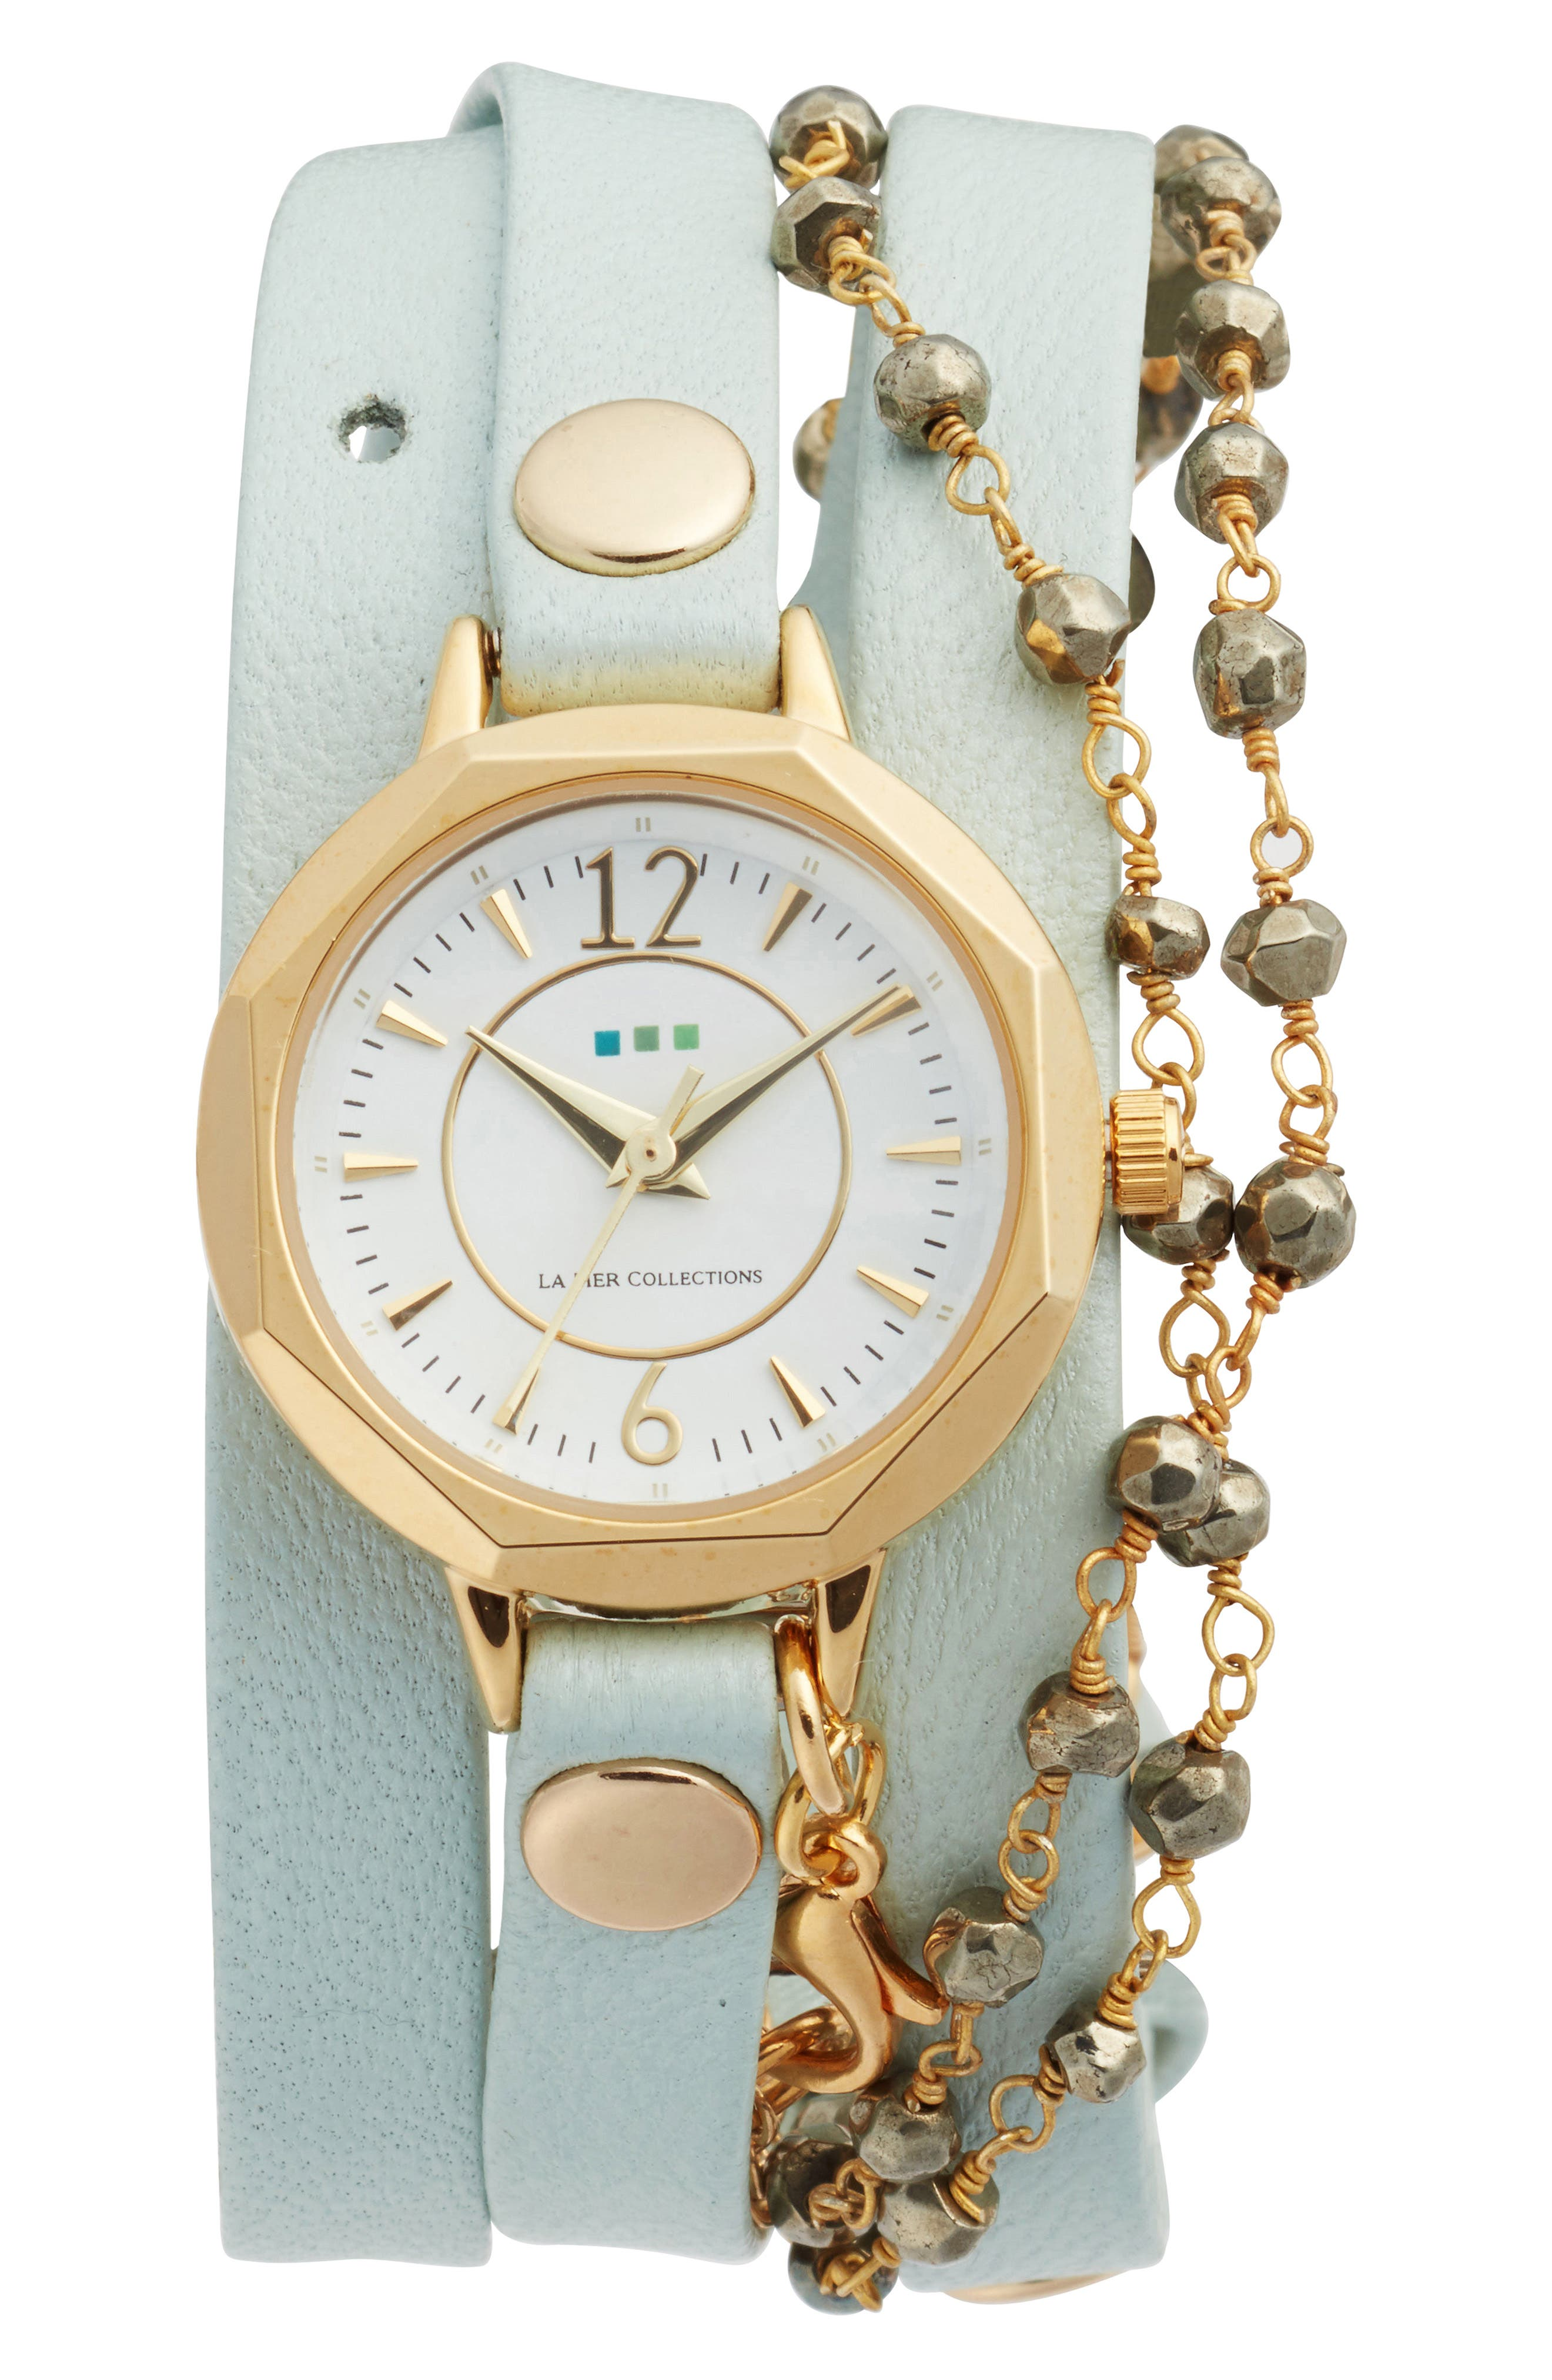 Perth Wrap Leather Strap Watch, 22mm,                         Main,                         color, Mint/White/Gold